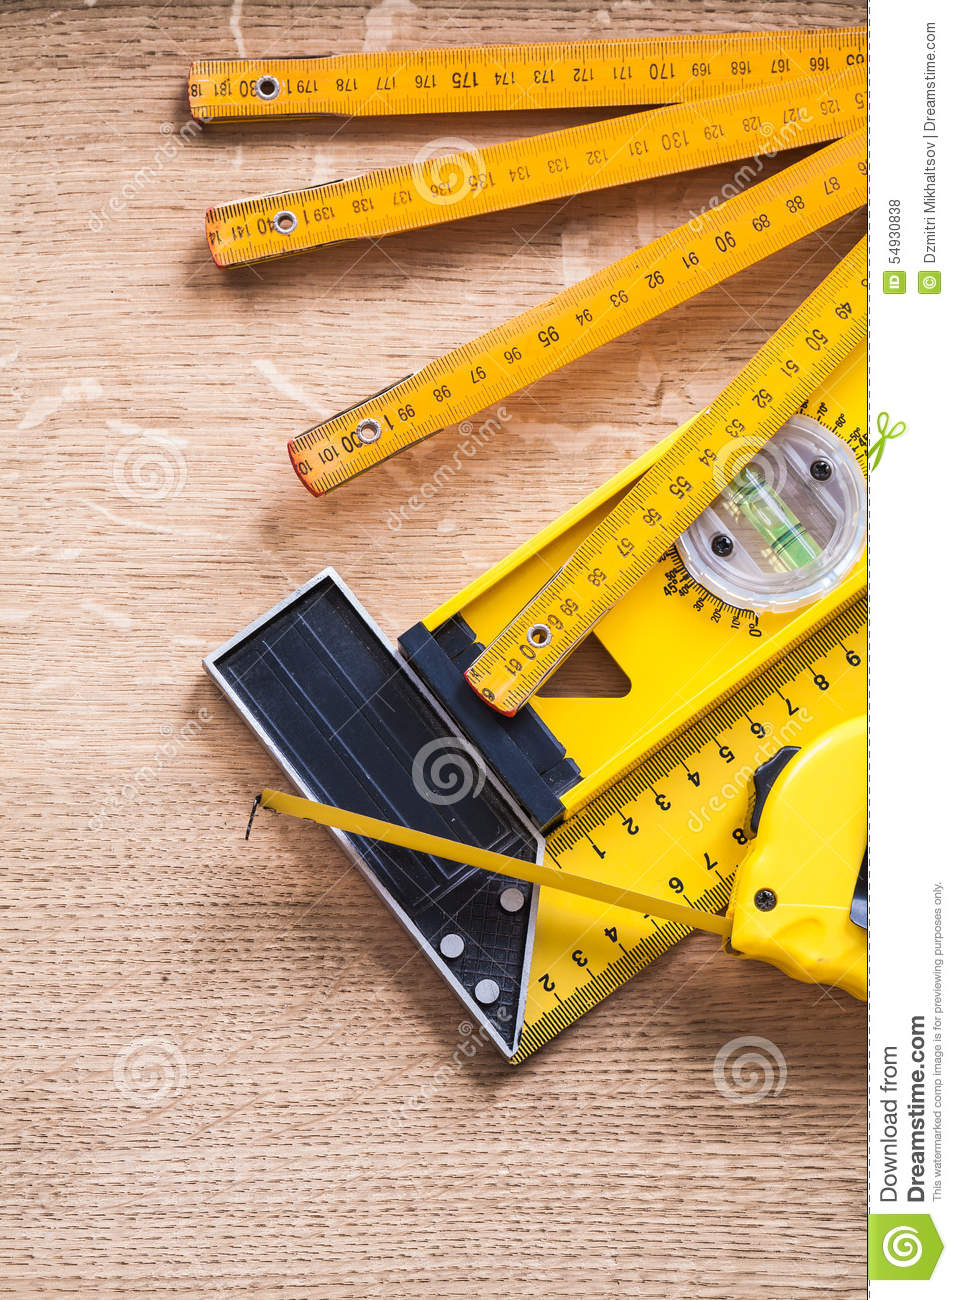 Wandplank 1 Meter.Wooden Meter Measuring Tape Construction Level And Stock Photo